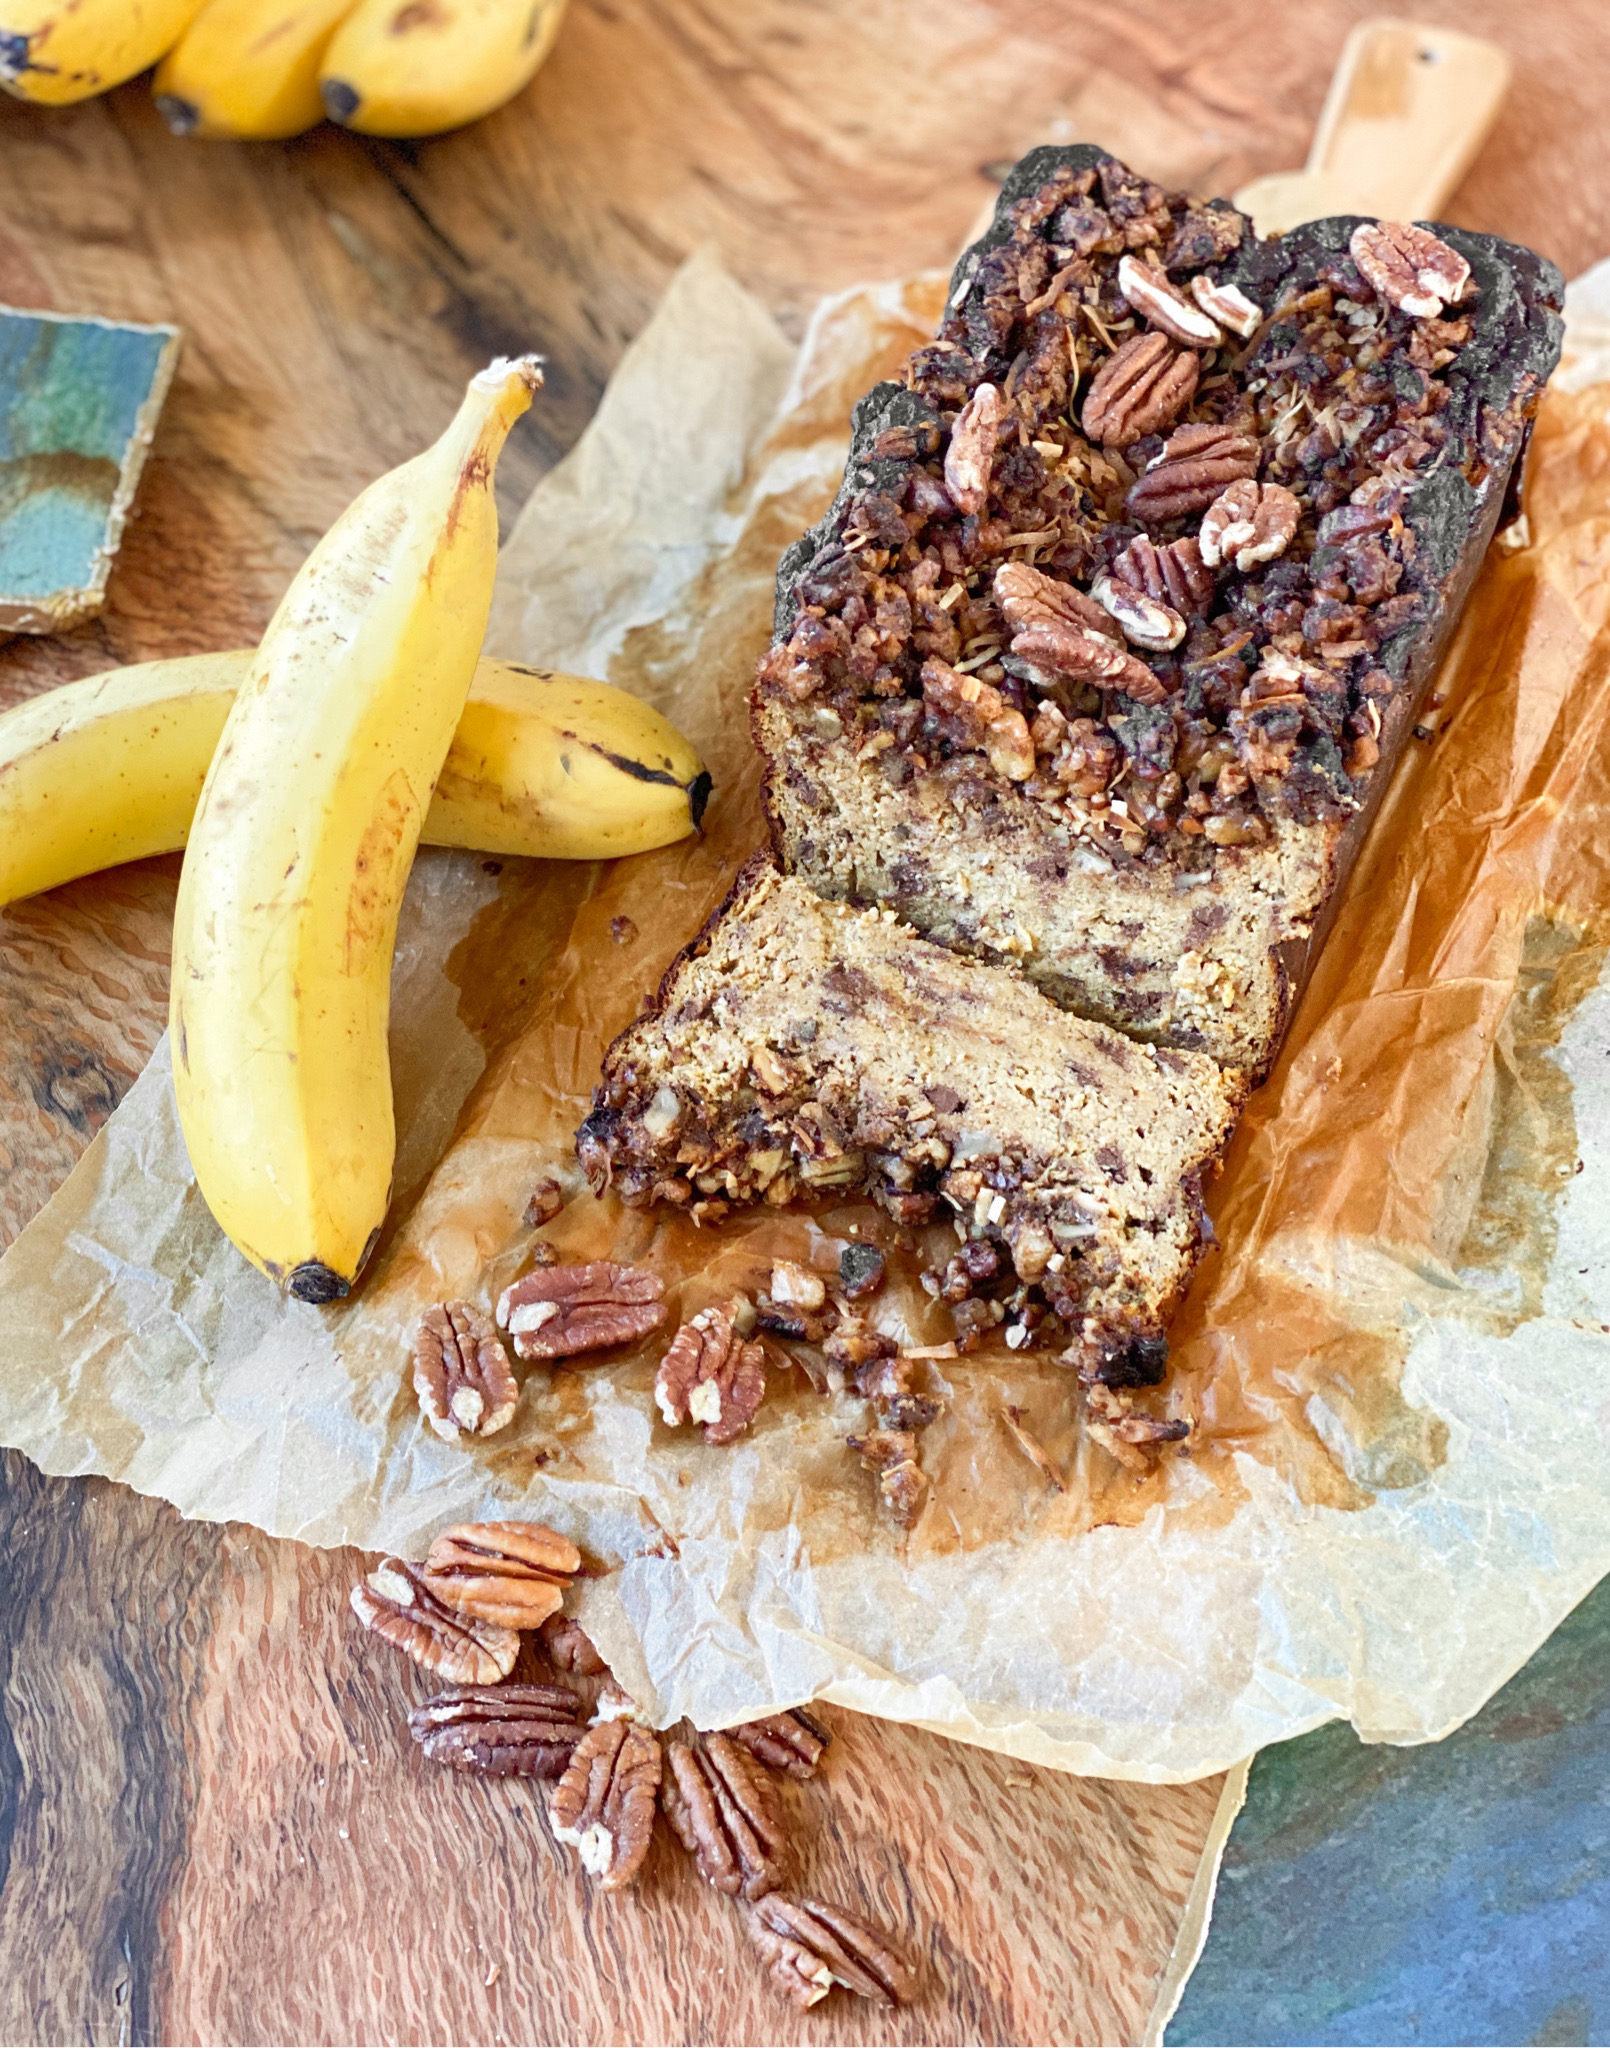 New Technique: Seared Banana Bread